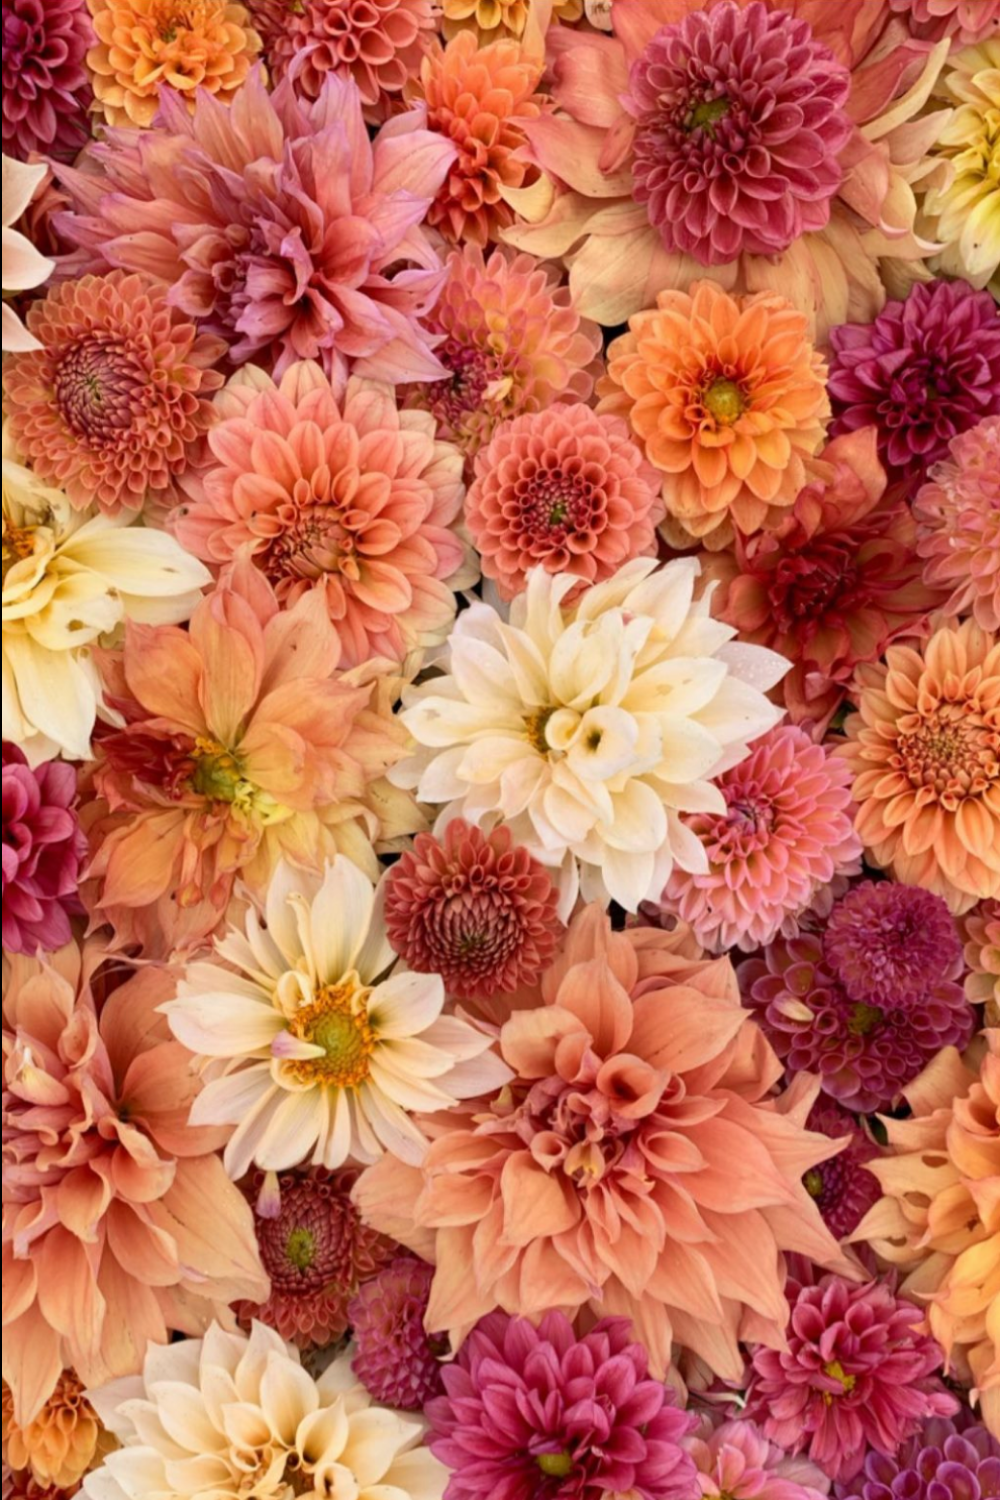 Fall mums in various colors